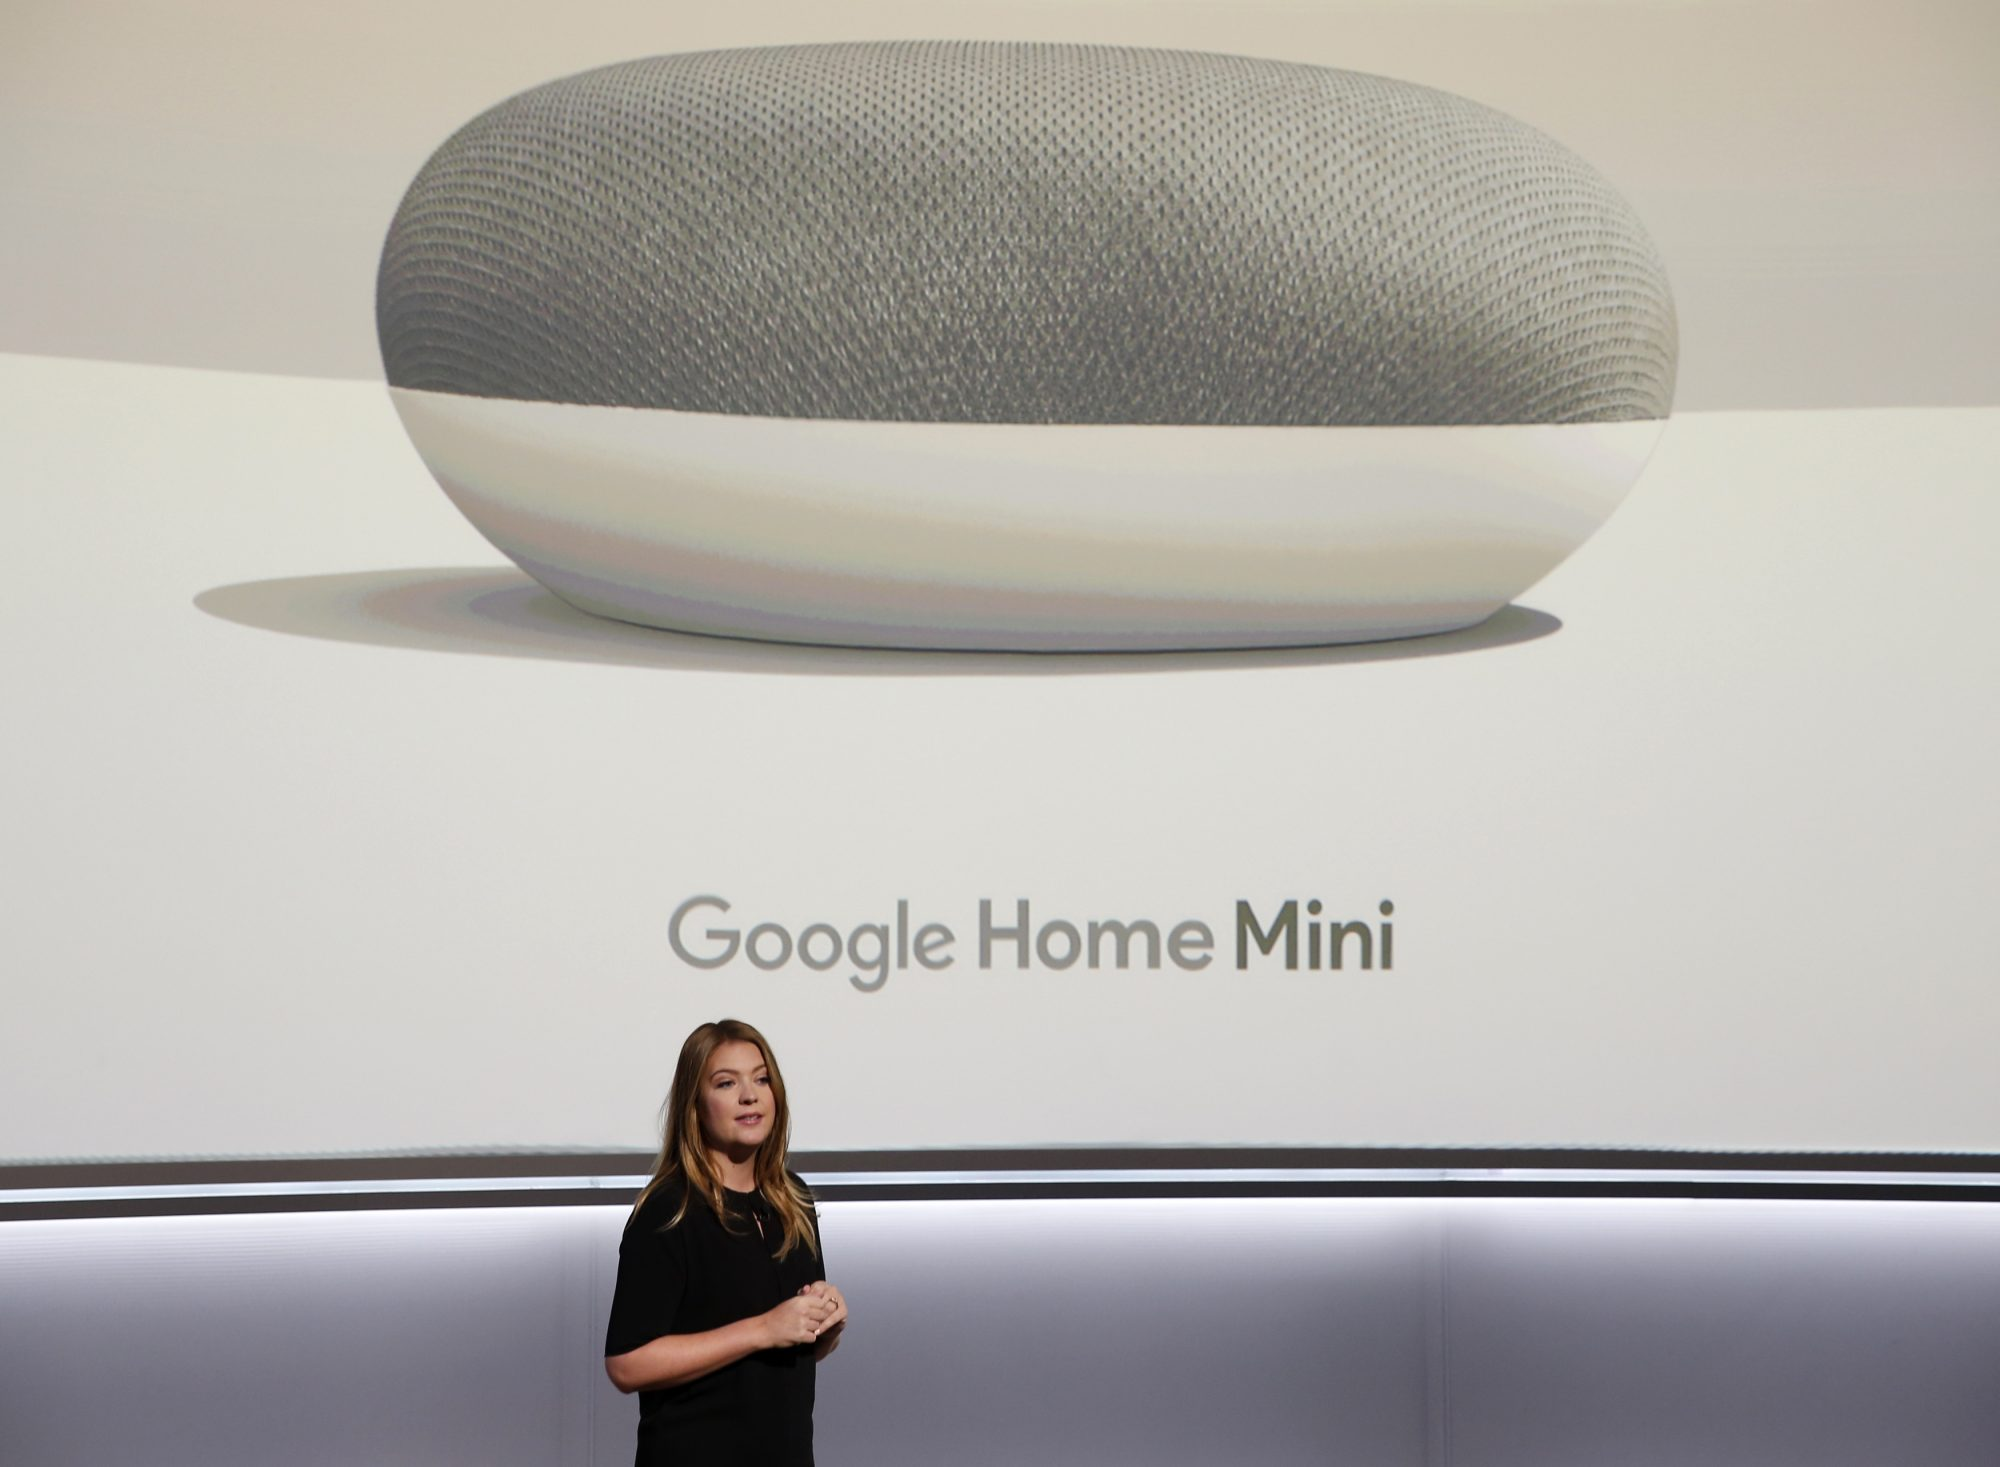 A Google Home in Every Kitchen: Morgan Stanley Tells Alphabet to Flood the U.S. With Devices to Fight Off Amazon